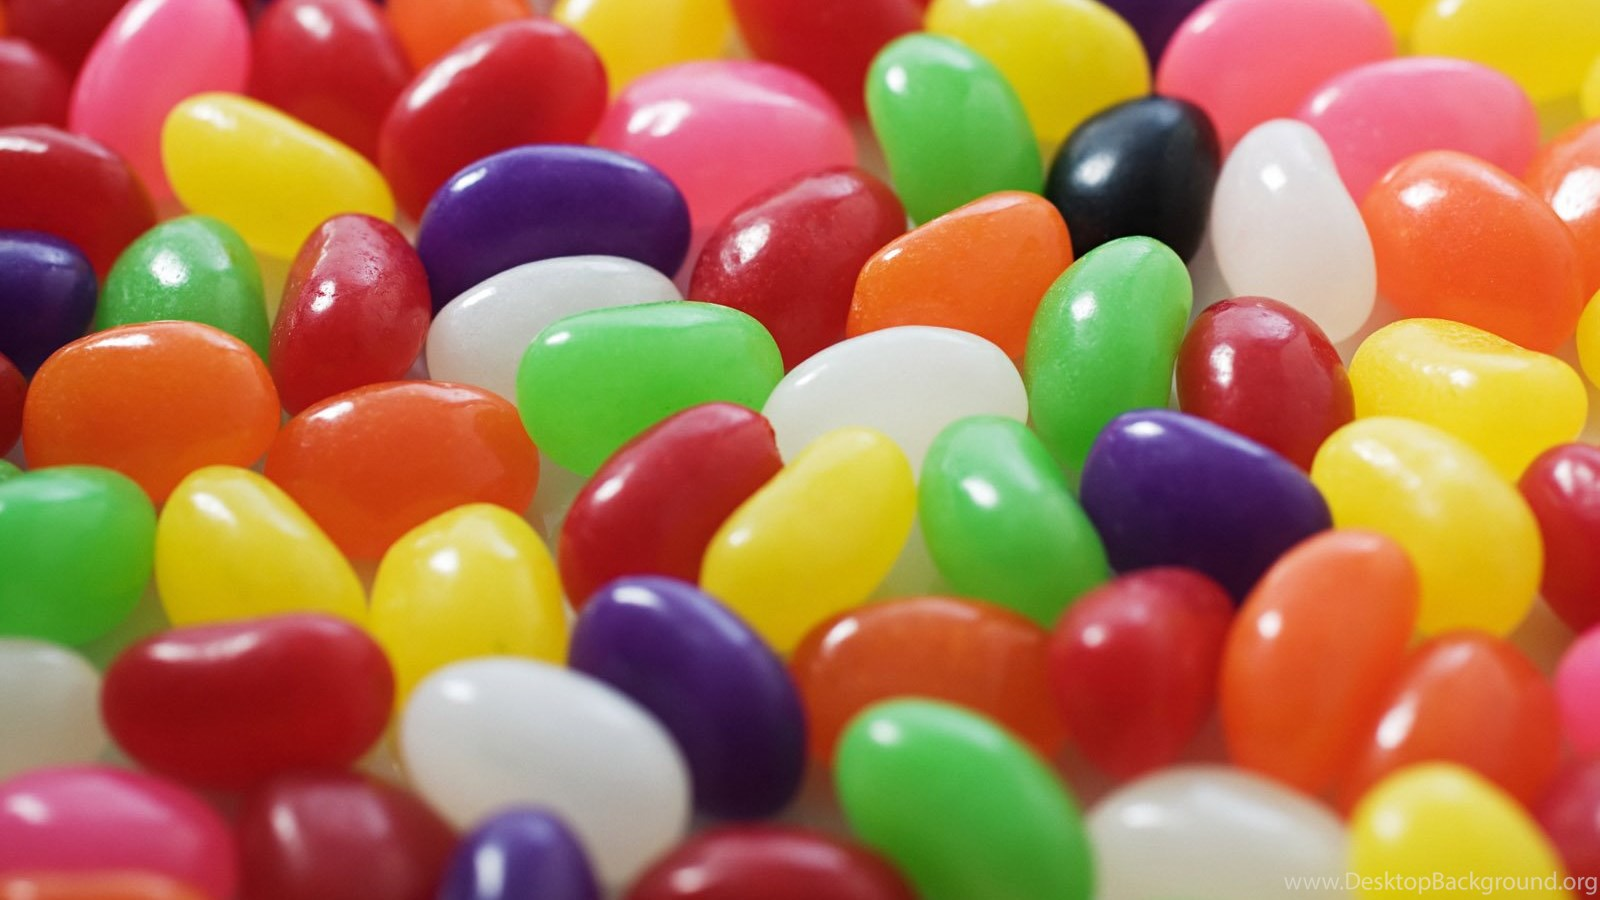 143 candy hd wallpapers desktop background